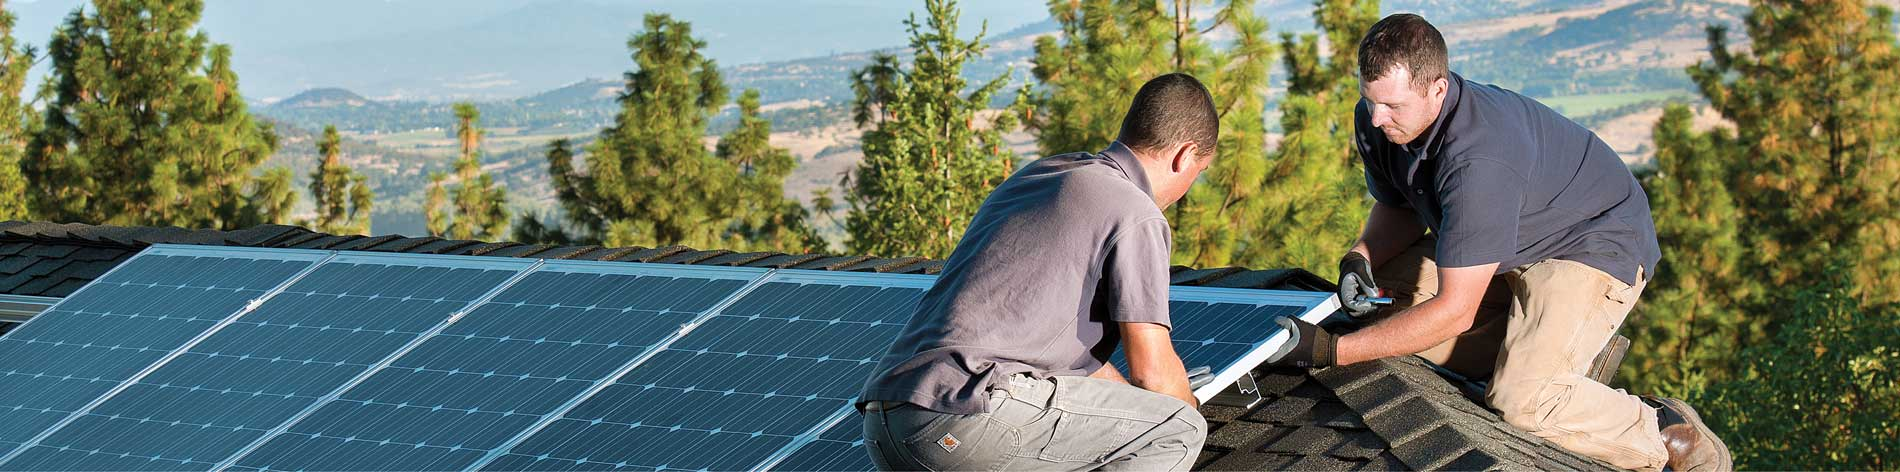 Off Grid Solar Energy in Southern Oregon